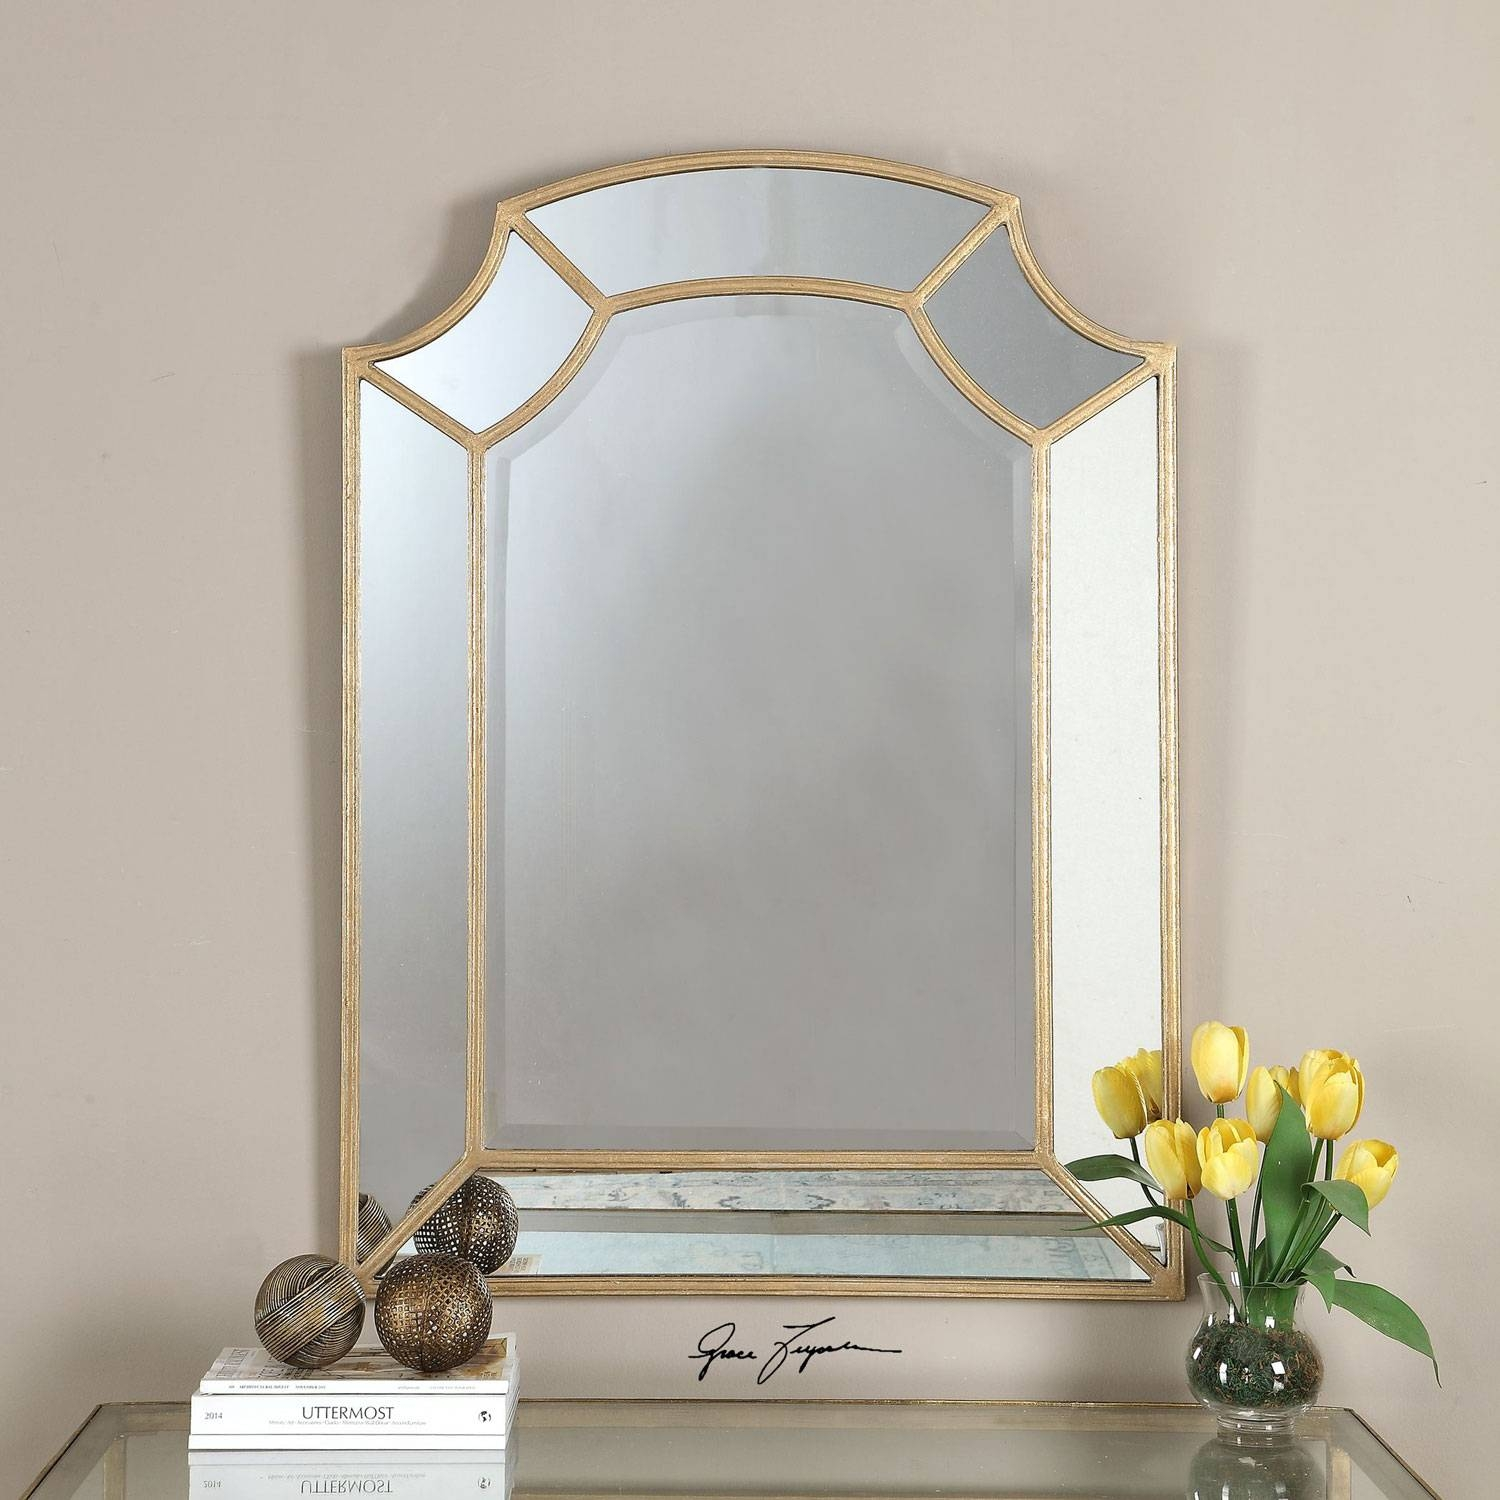 Francoli Gold Arch Mirror Uttermost Wall Mirror Mirrors Home Decor throughout Gold Arch Mirrors (Image 7 of 25)